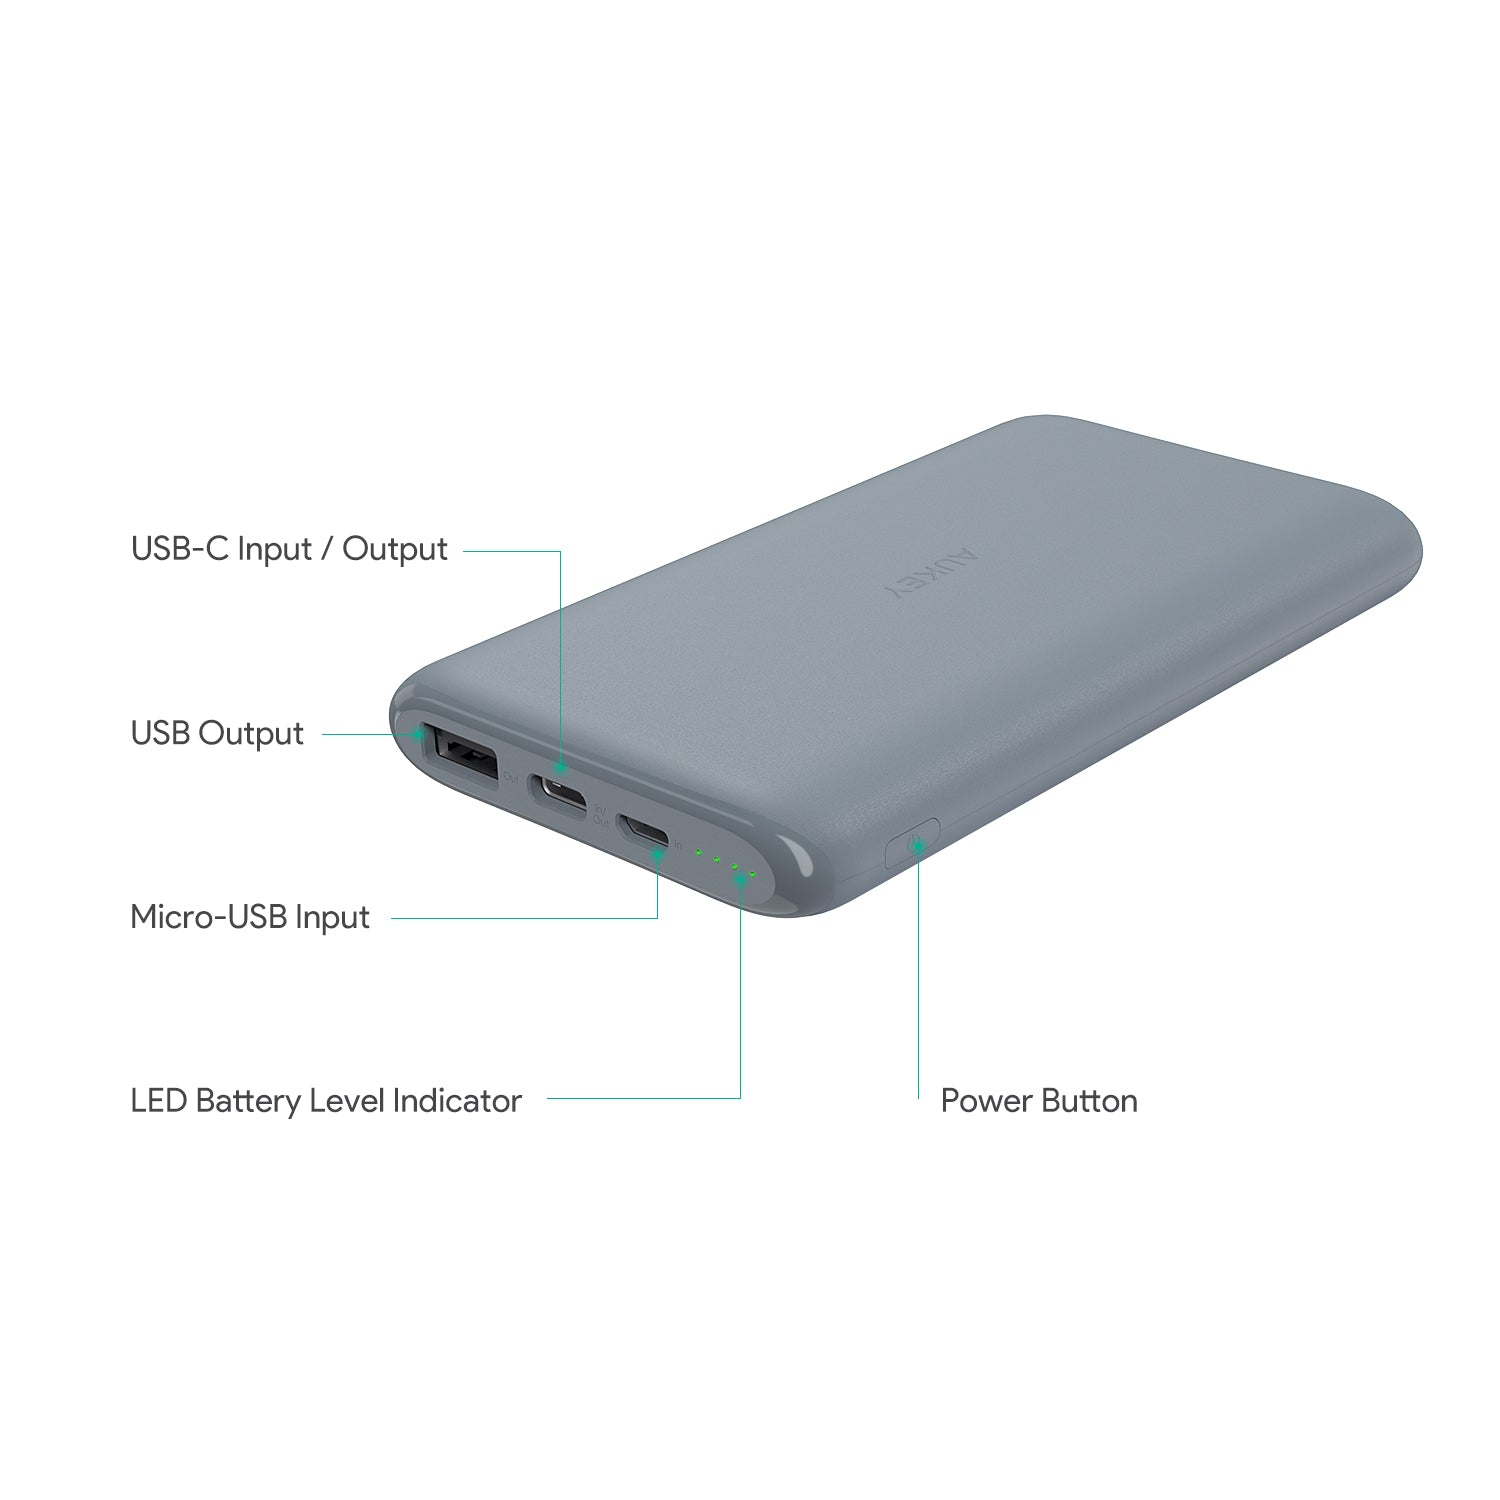 AUKEY PB-XN10 10000mAh USB-C Power Bank